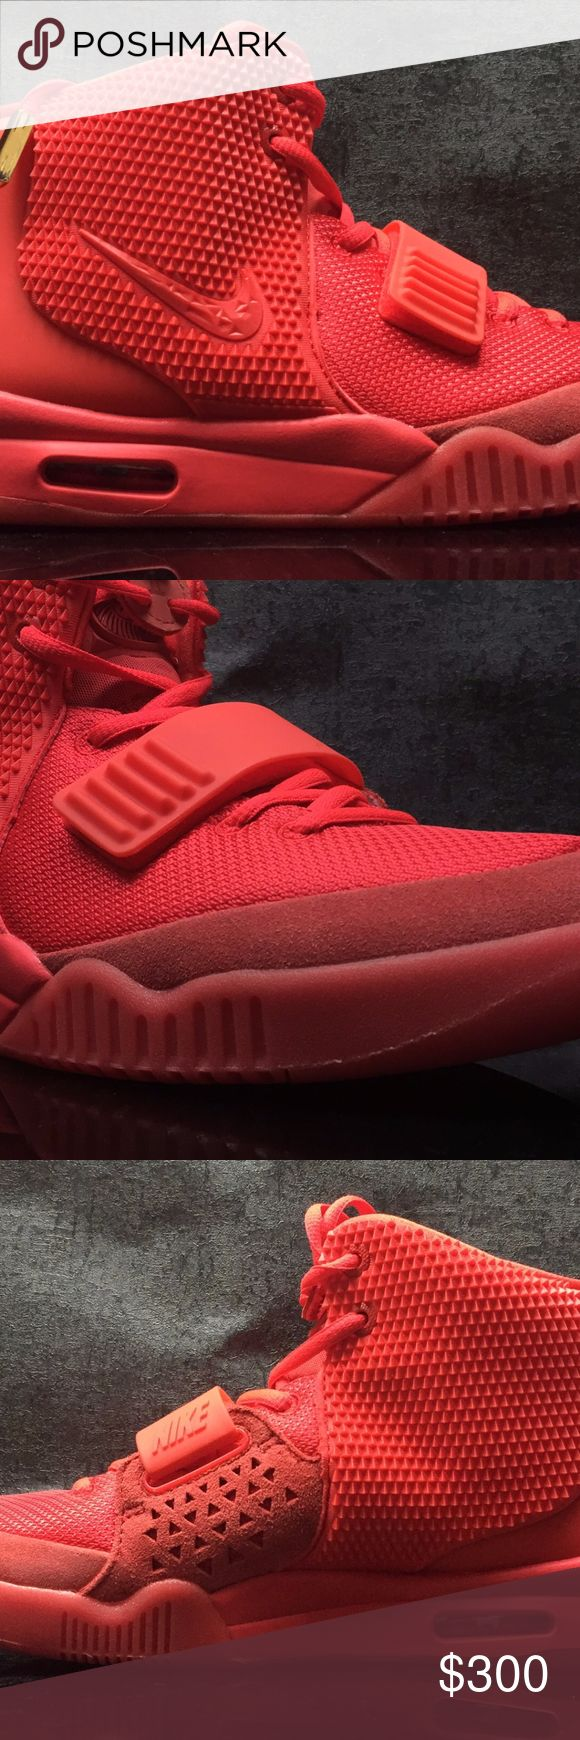 "Nike Air Yeezy 2 SP ""Red October"" UA! NEW WITH BOX! 9~12 SHIPPING DAYS Nike Shoes Sneakers"